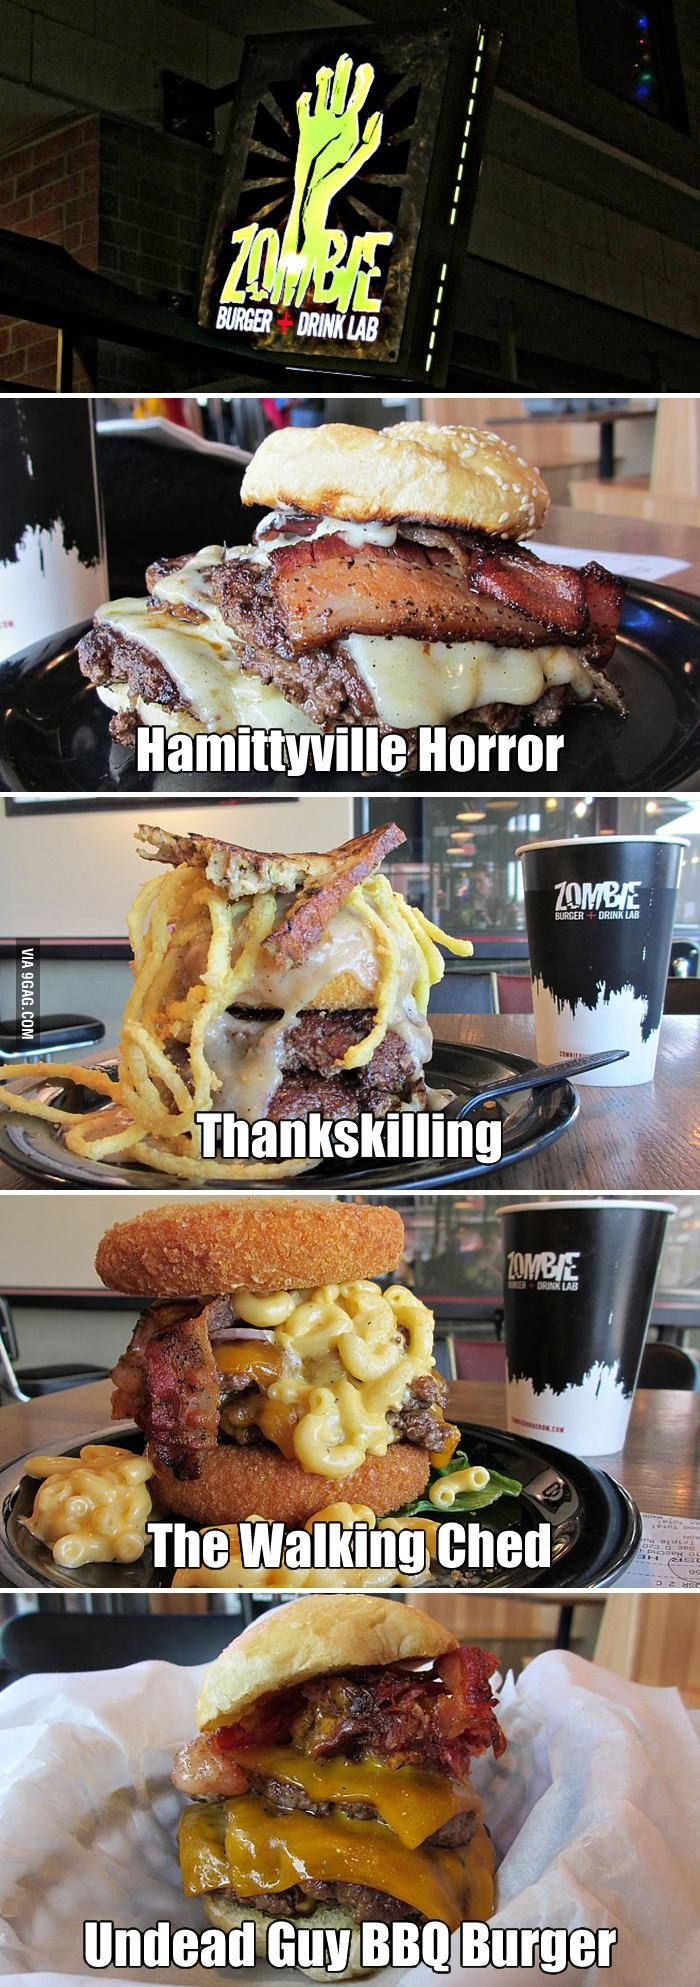 Zombie Burger on 9Gag